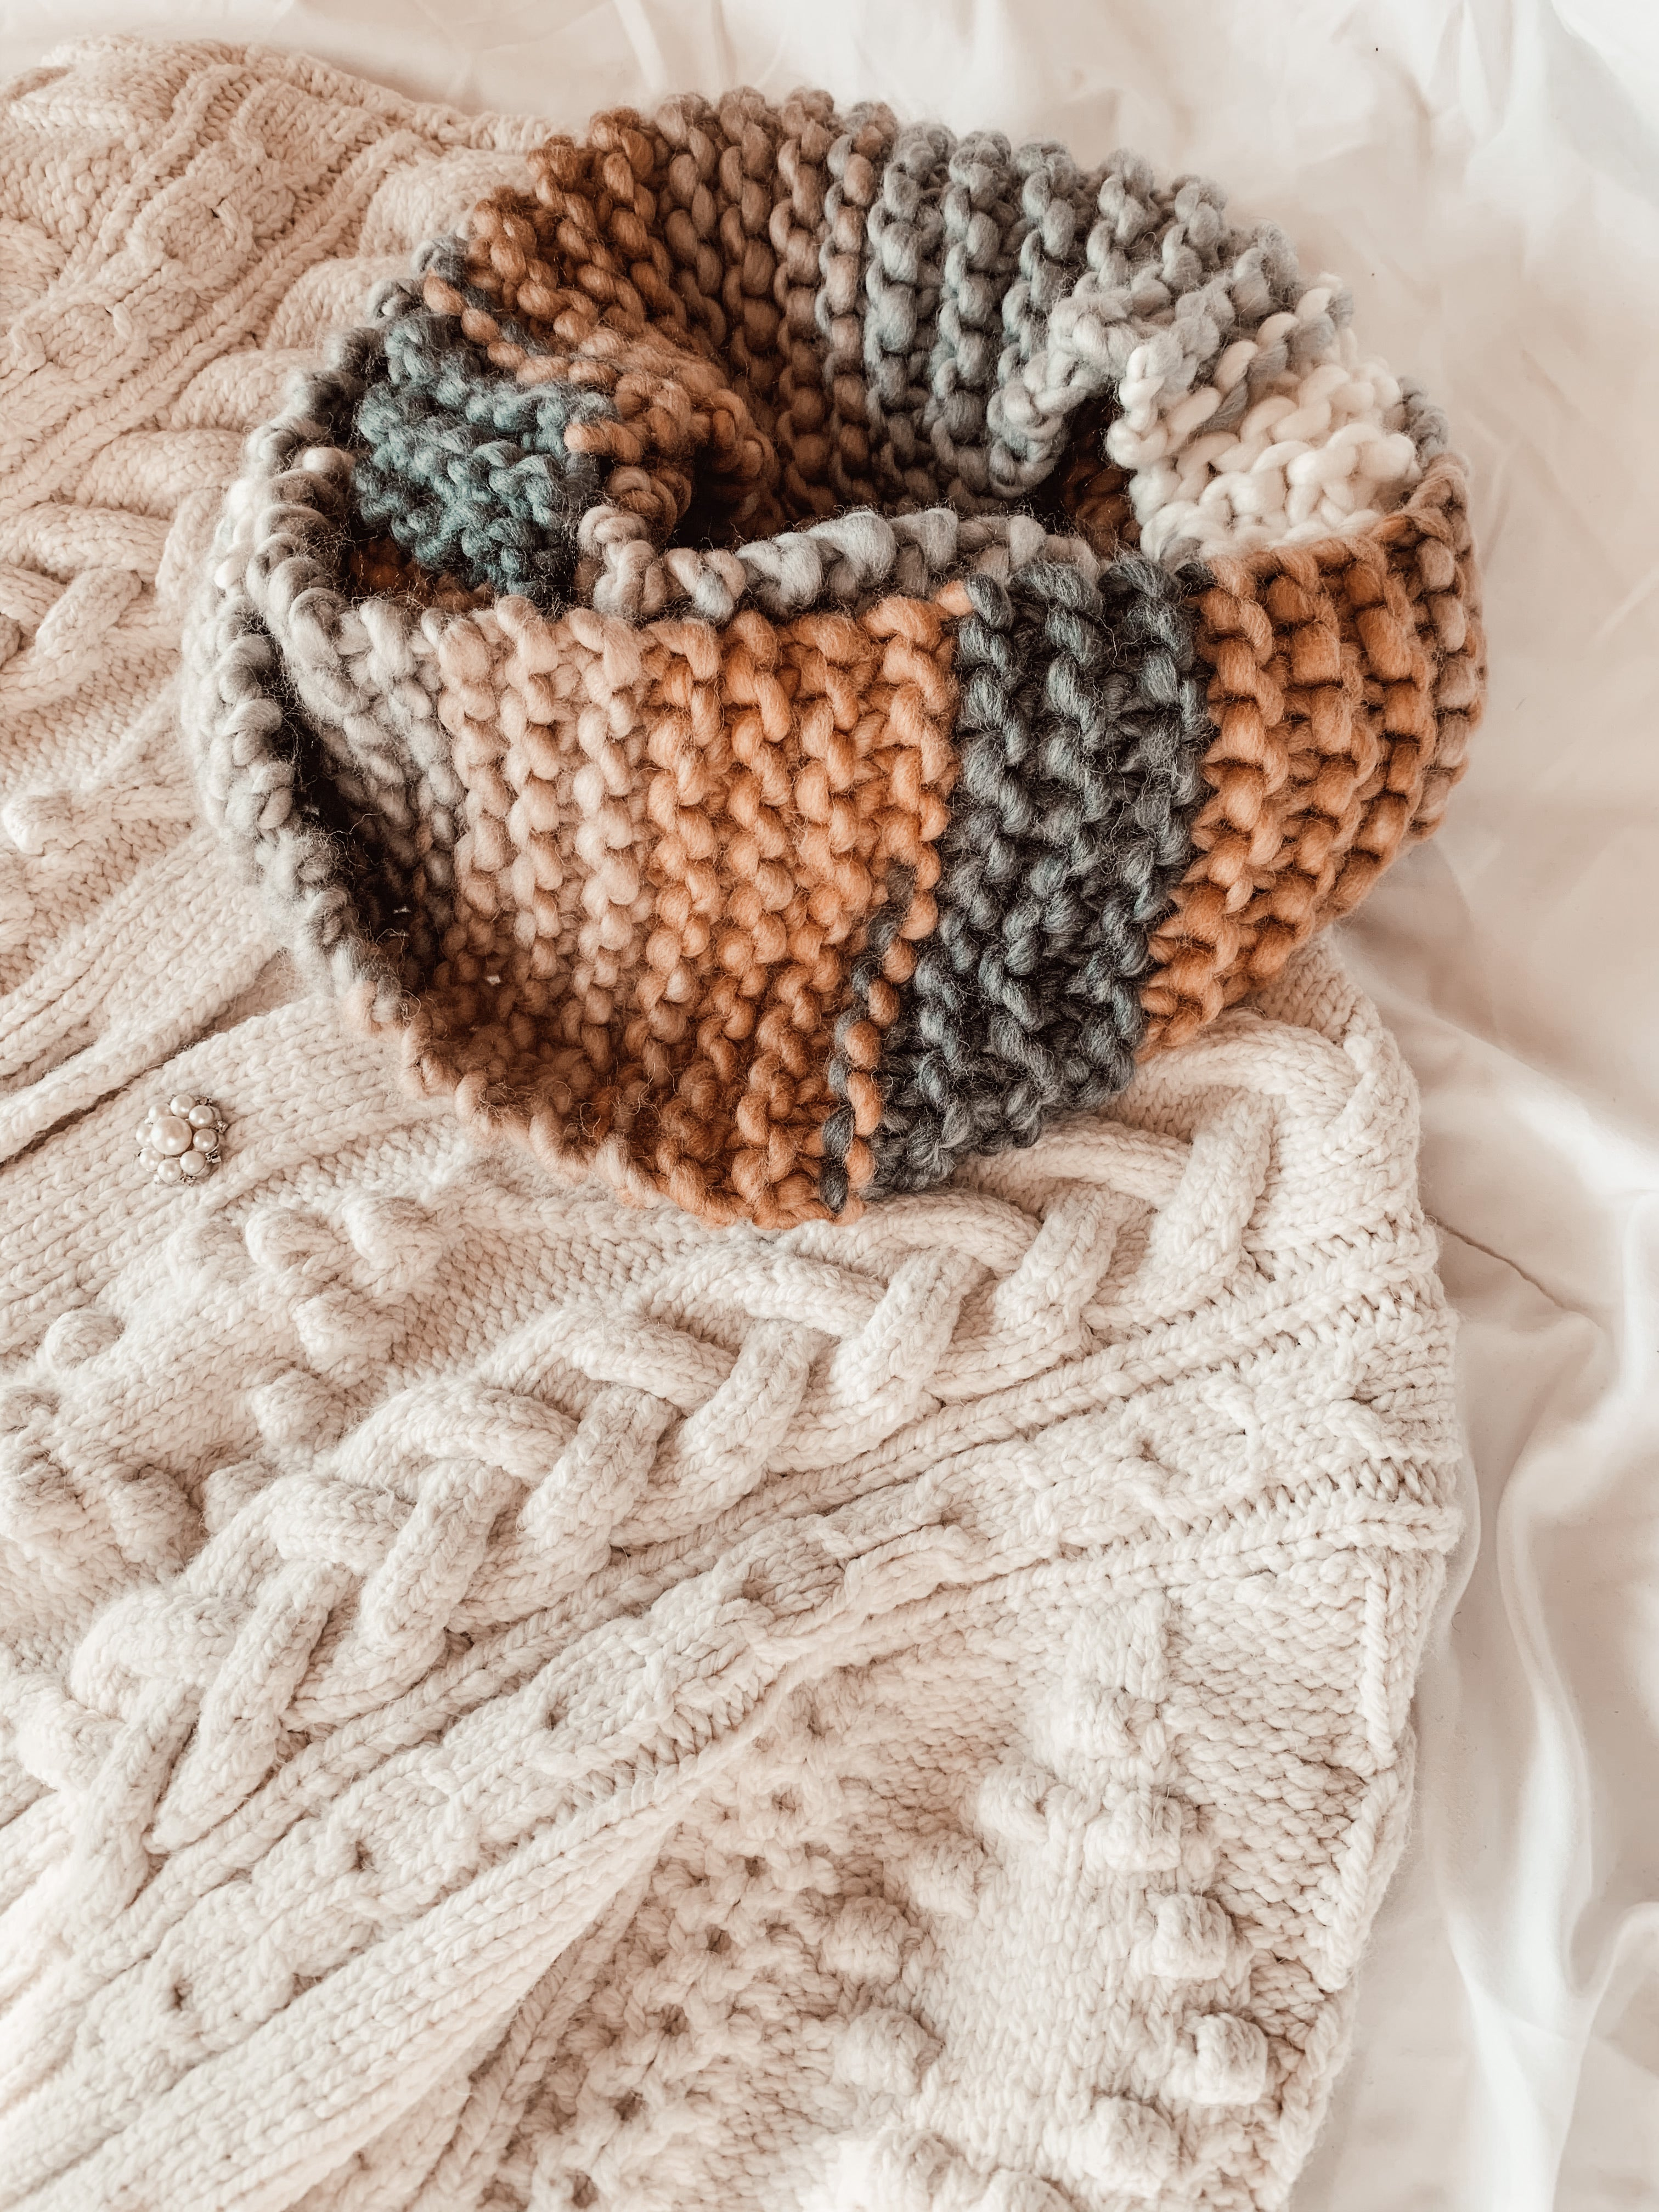 *PRE-ORDER* The Harlow Infinity Scarf - Winter En Couleur Collection